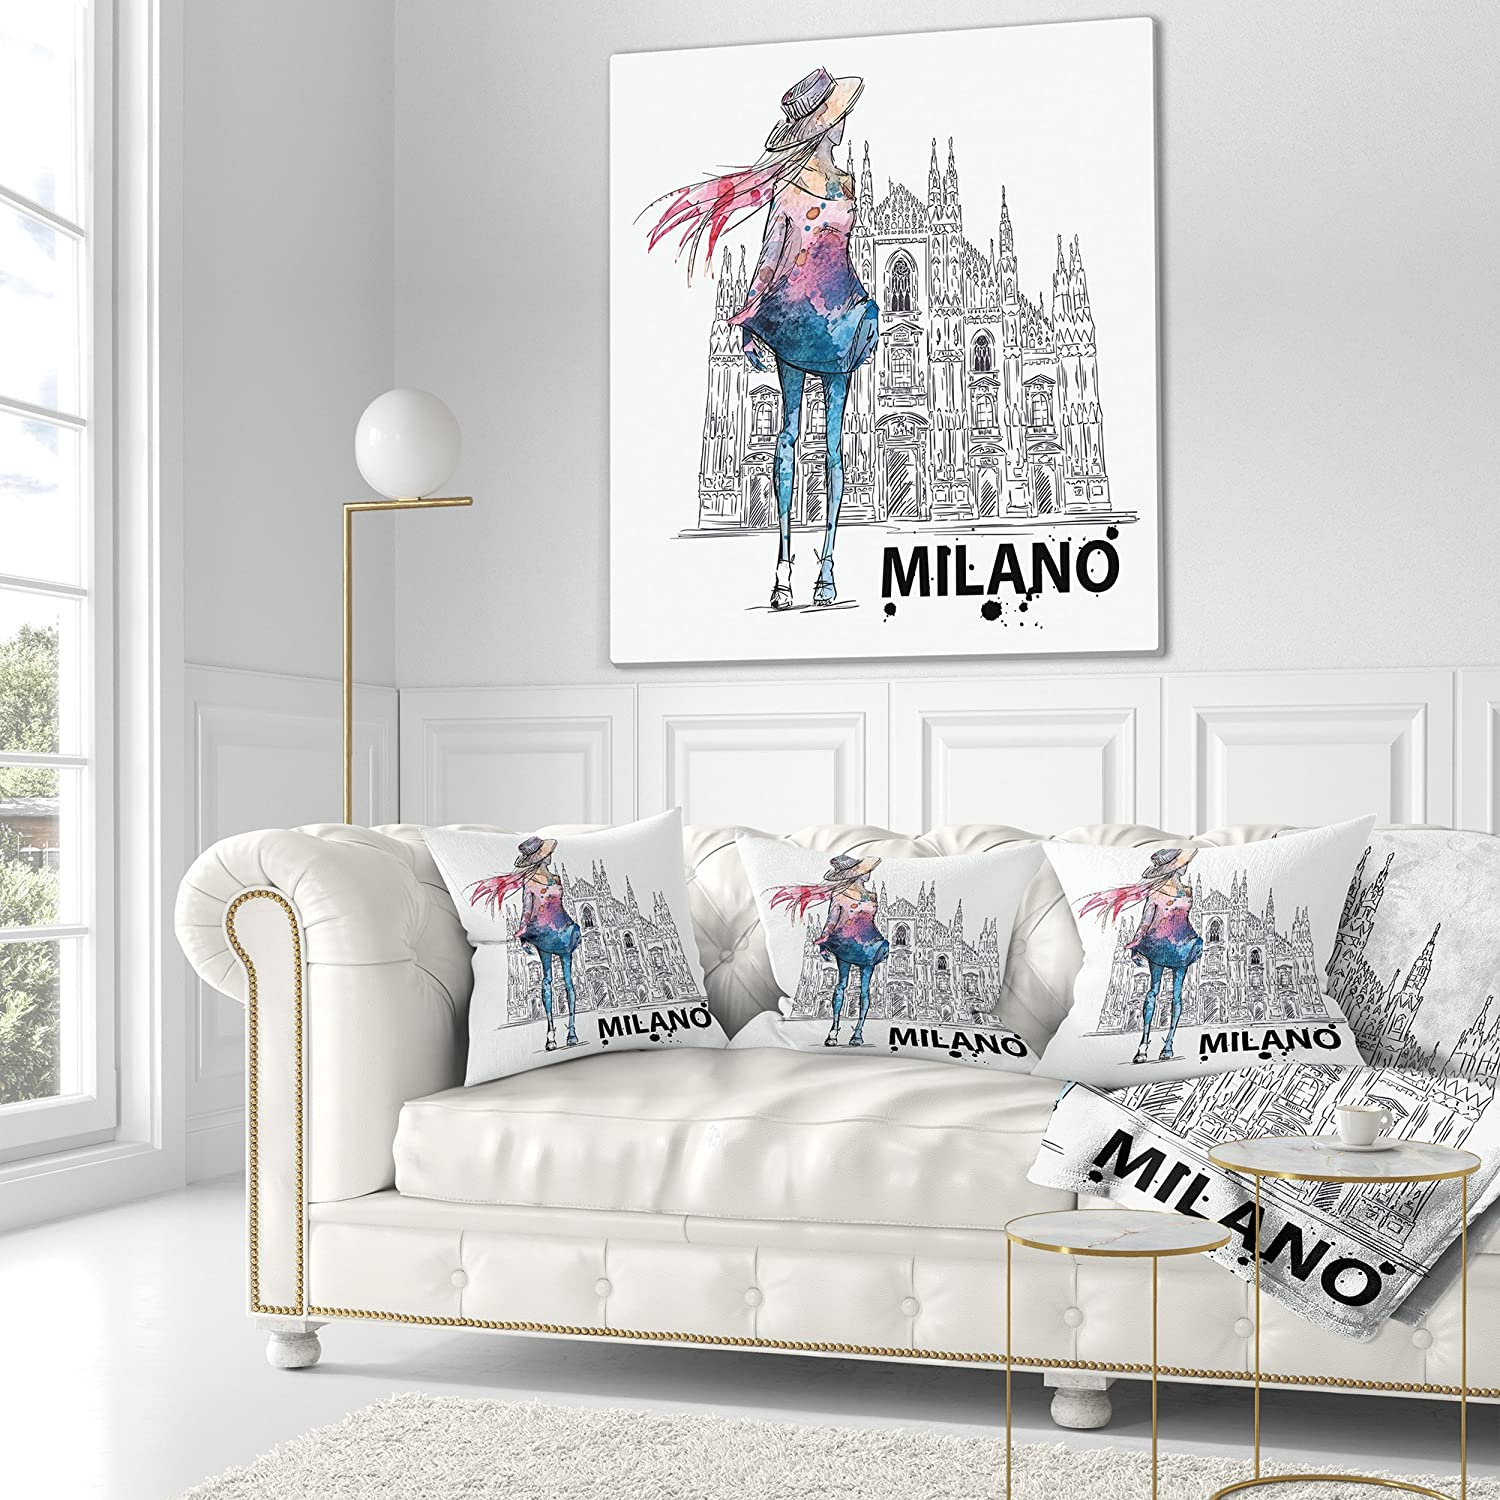 x 18 in in Designart CU6643-18-18 Girl on a Milano Duomo Contemporary Cushion Cover for Living Room Sofa Throw Pillow 18 in